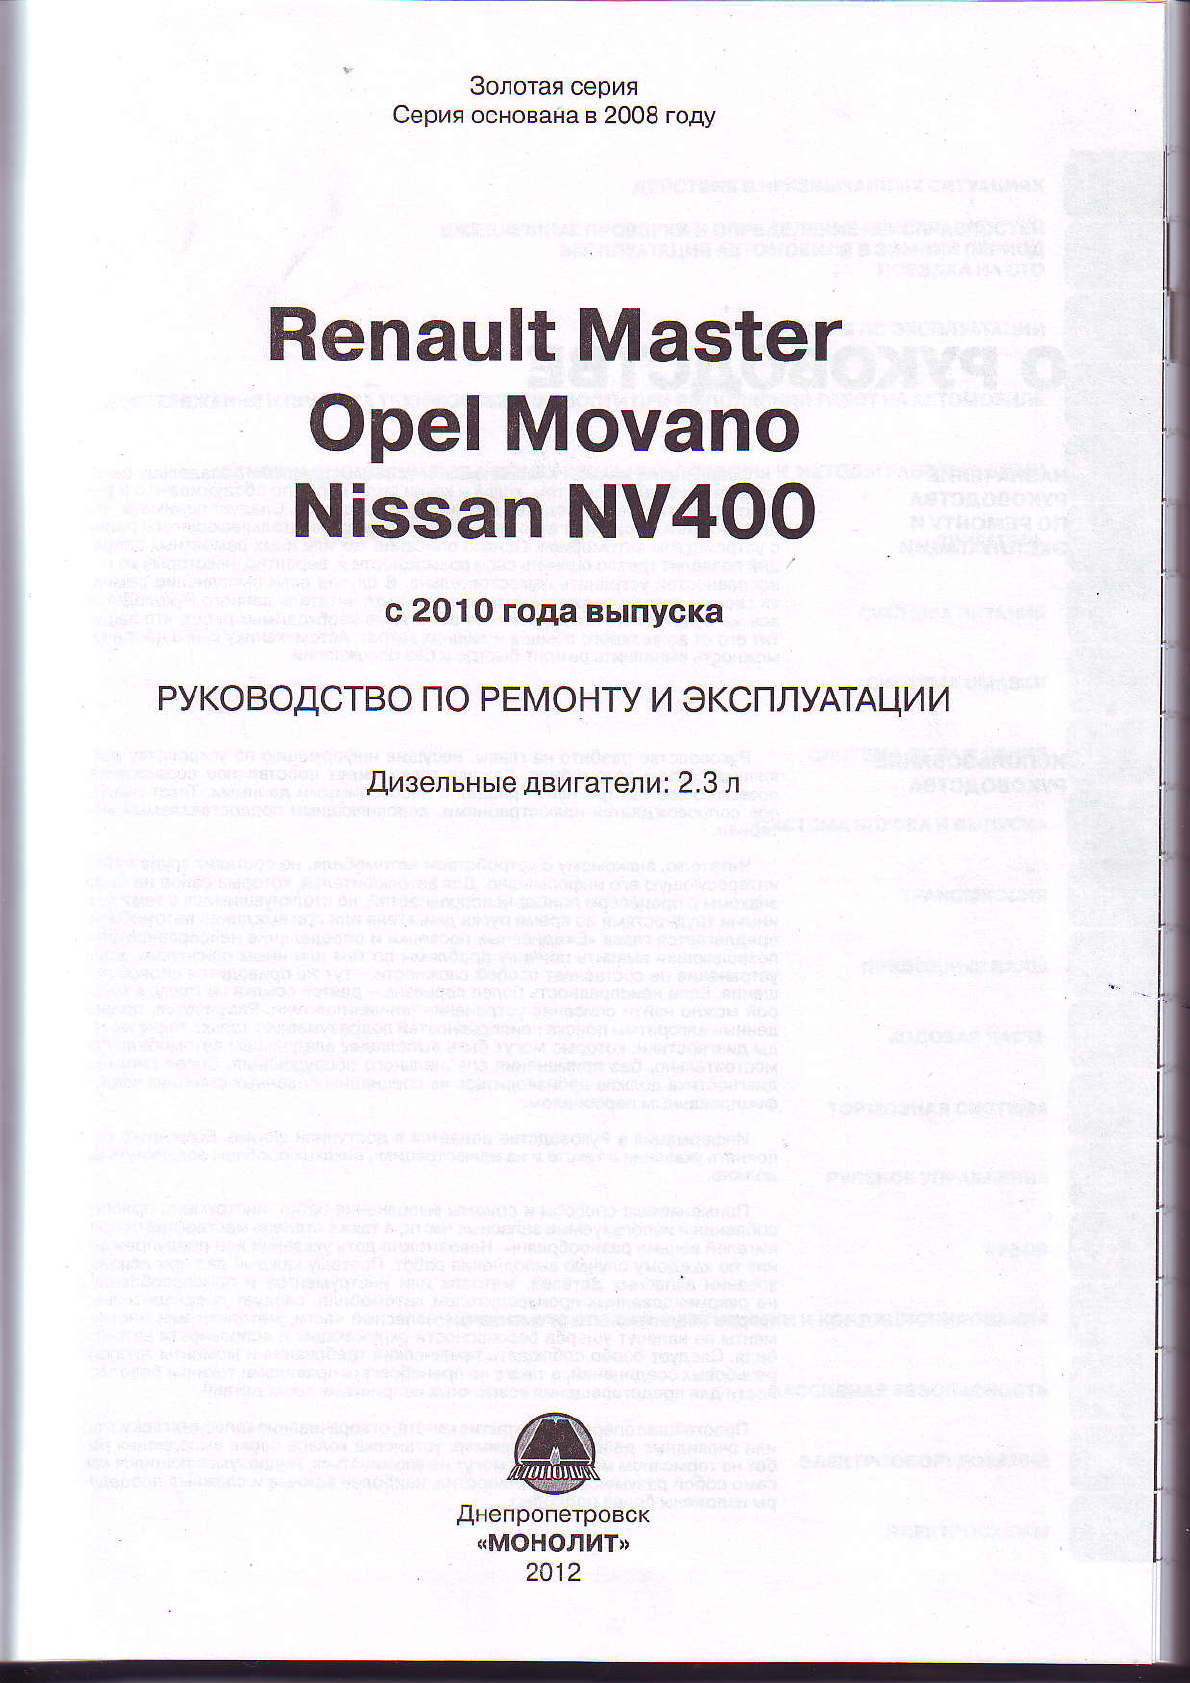 opel movano workshop manual russian pdf rh manuals co vauxhall movano workshop repair and service manual vauxhall movano owner's manual